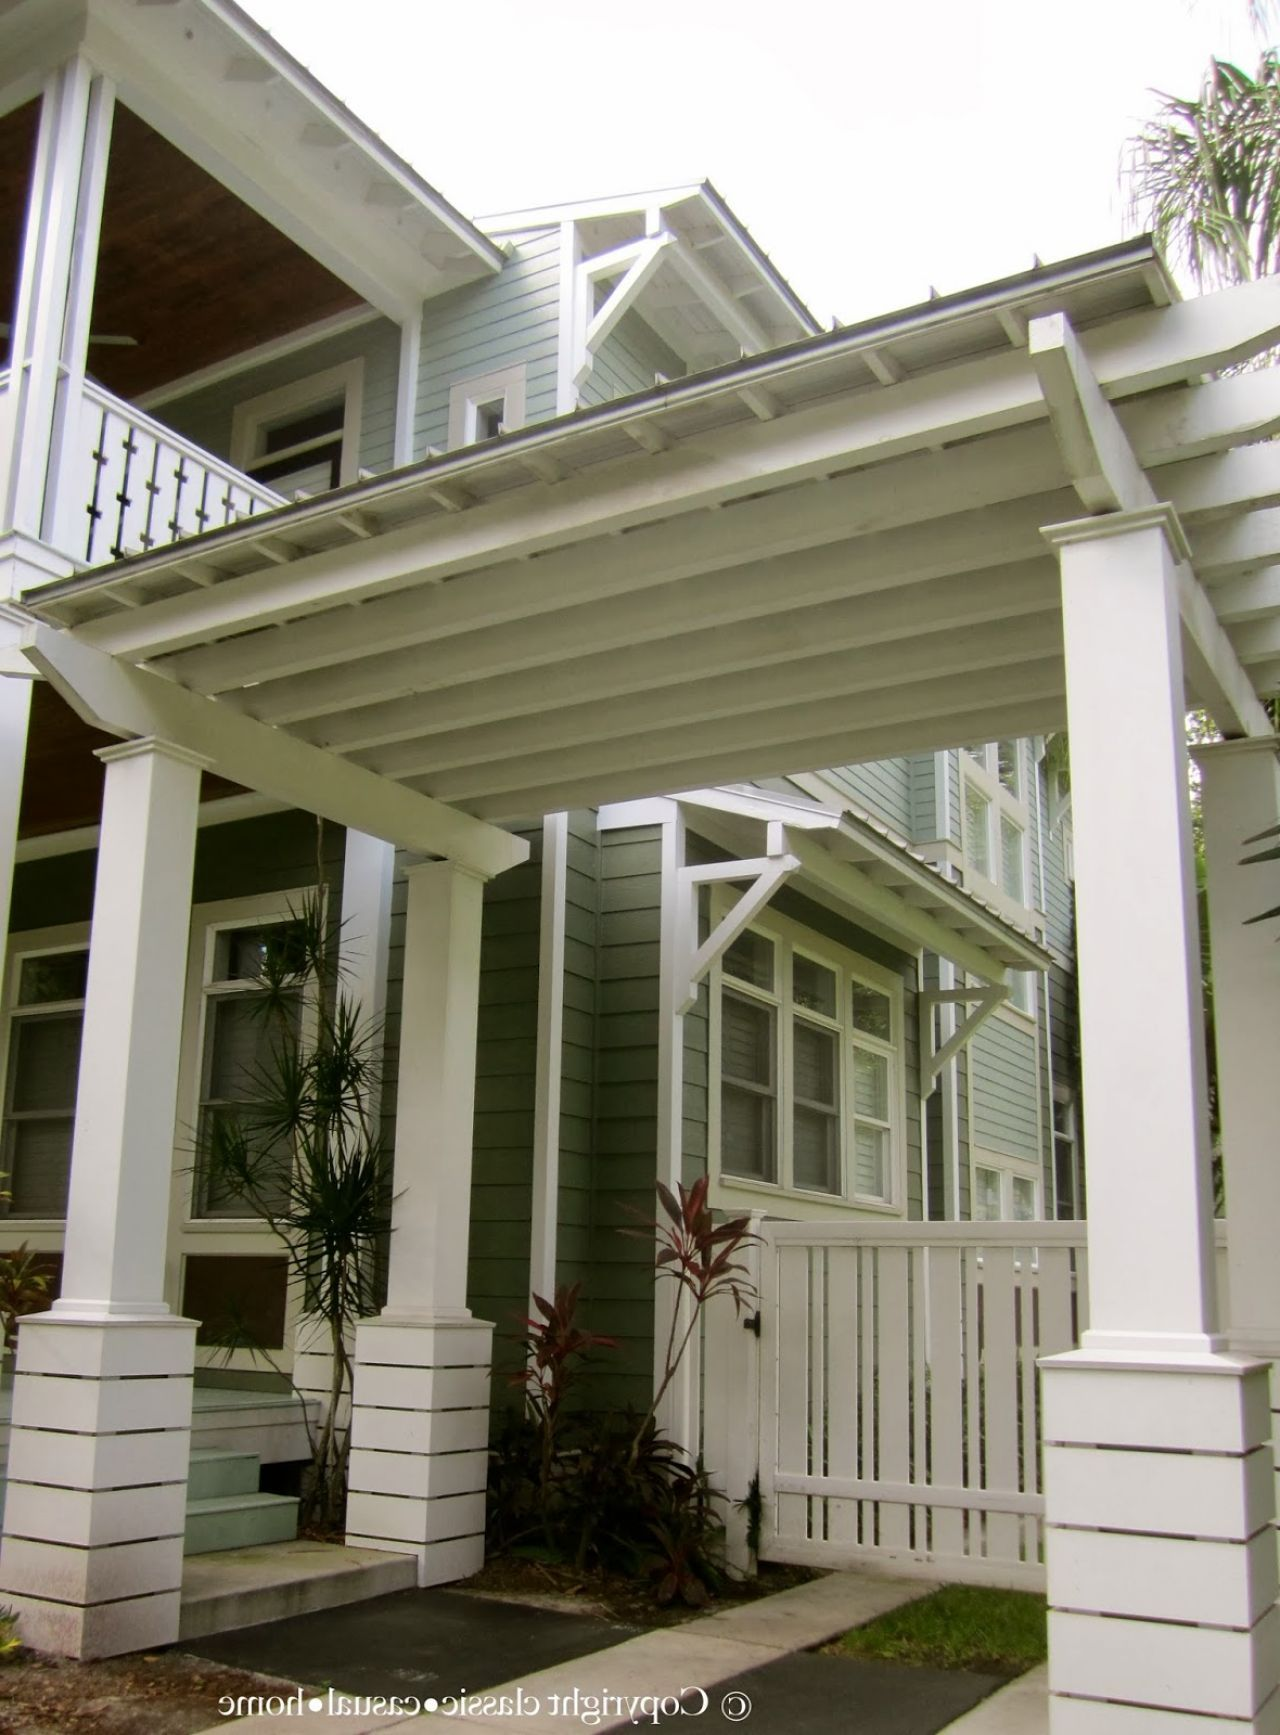 Homes with porte cochere garage pinterest driveways for Porte cochere homes